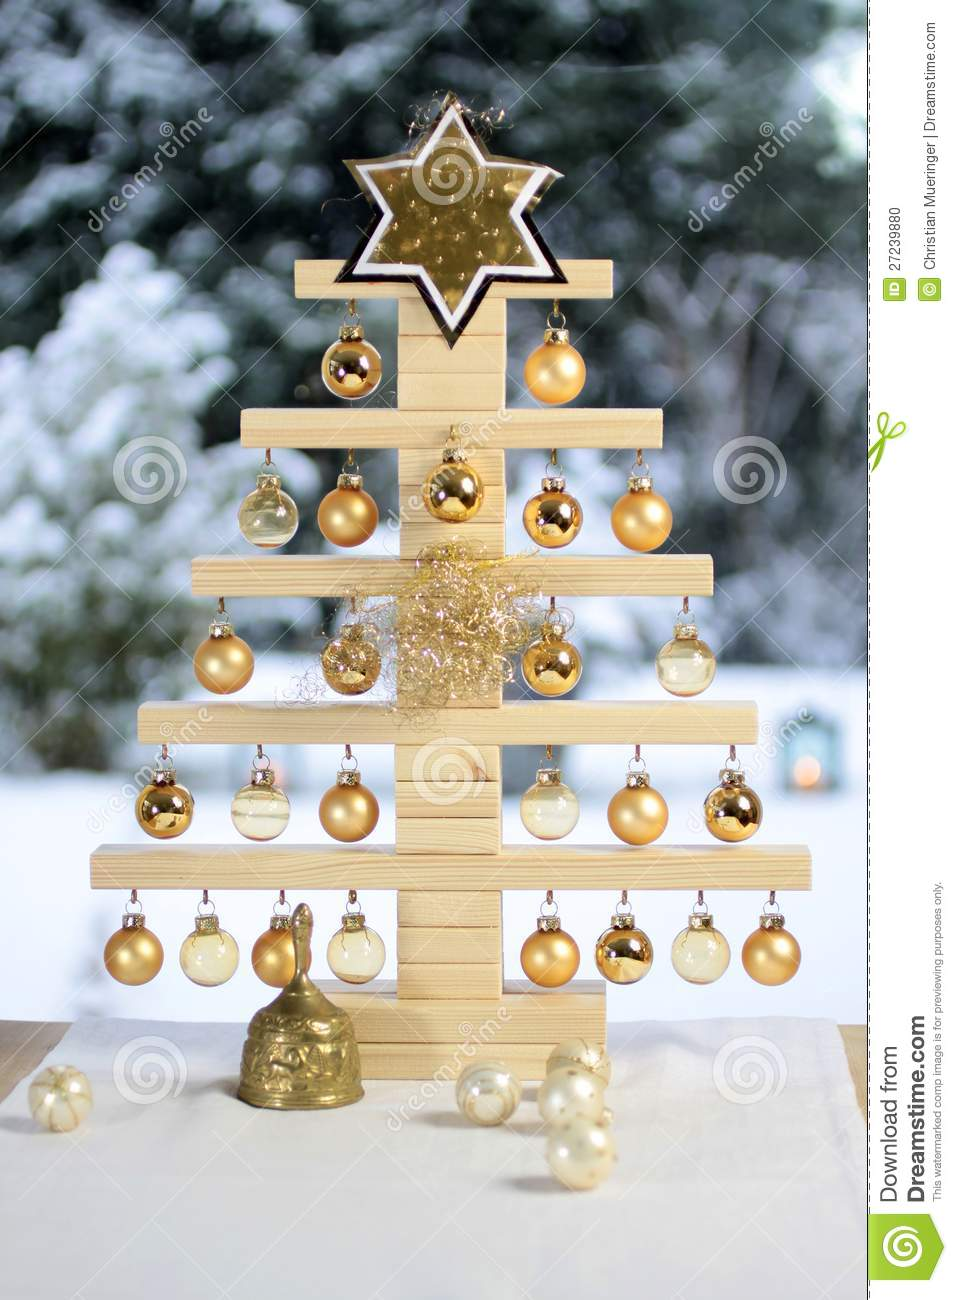 Home Made Wooden Christmas Tree Stock Photo Image Of